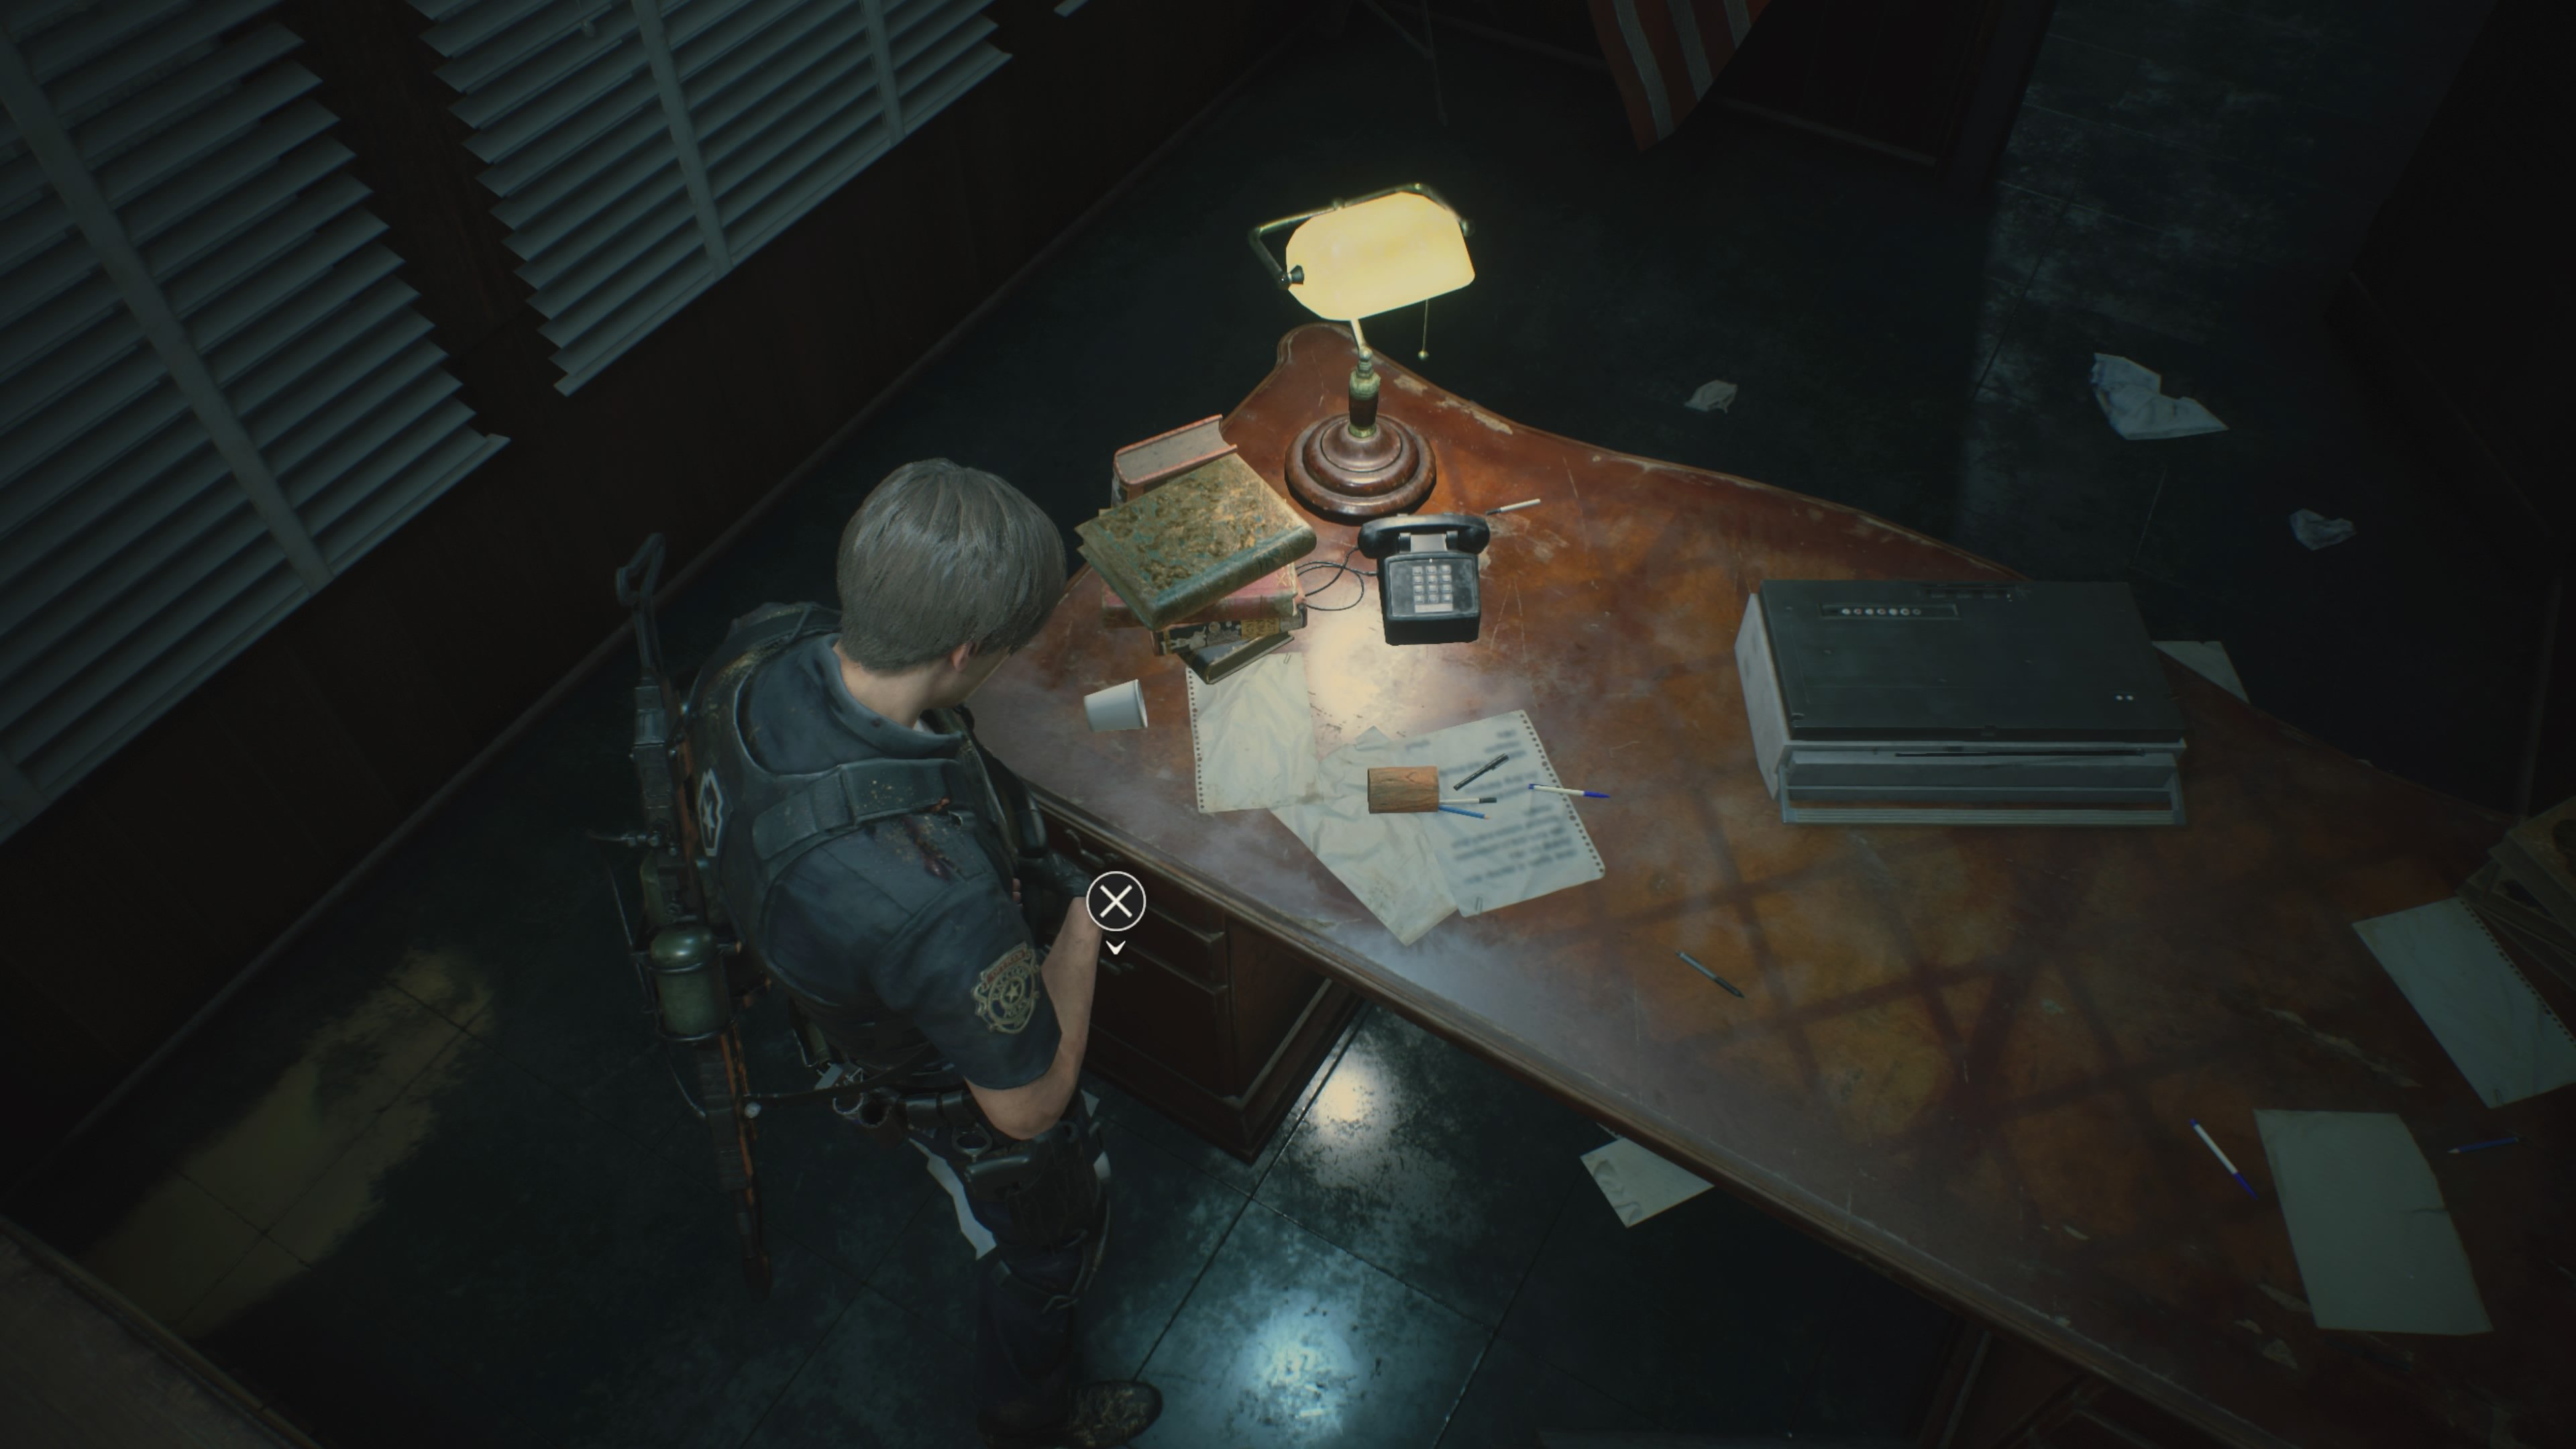 Hiding Place Film Locations in RE2